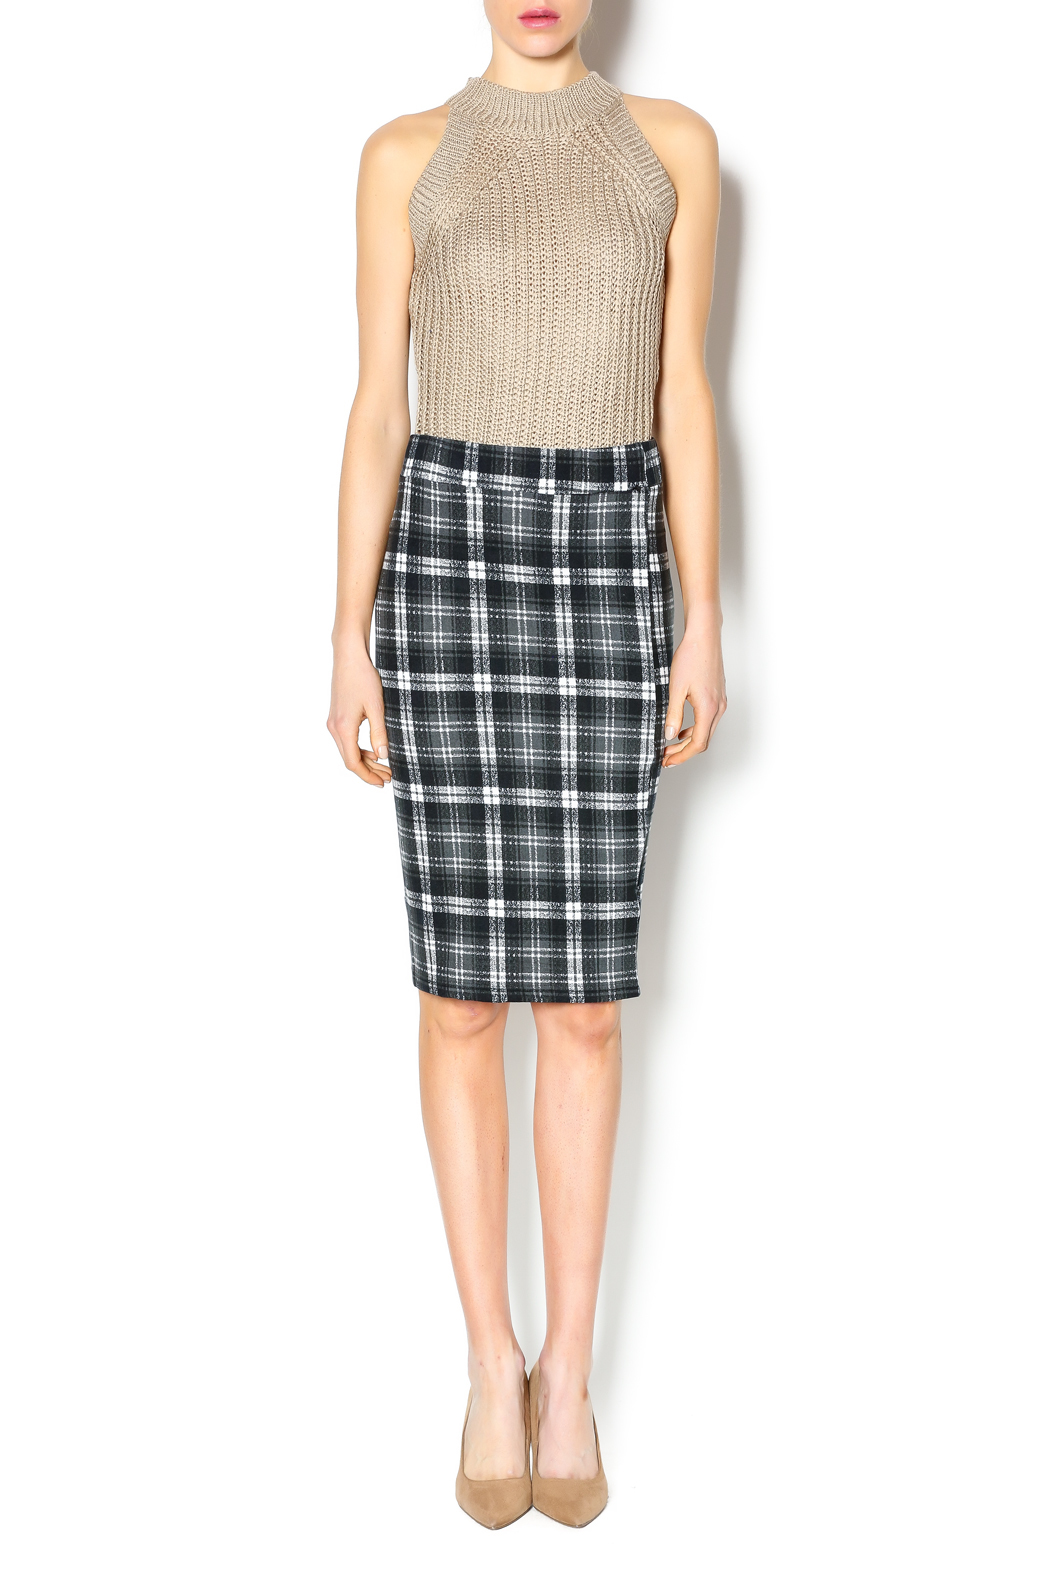 Bishop + Young Plaid Pencil Skirt - Front Full Image